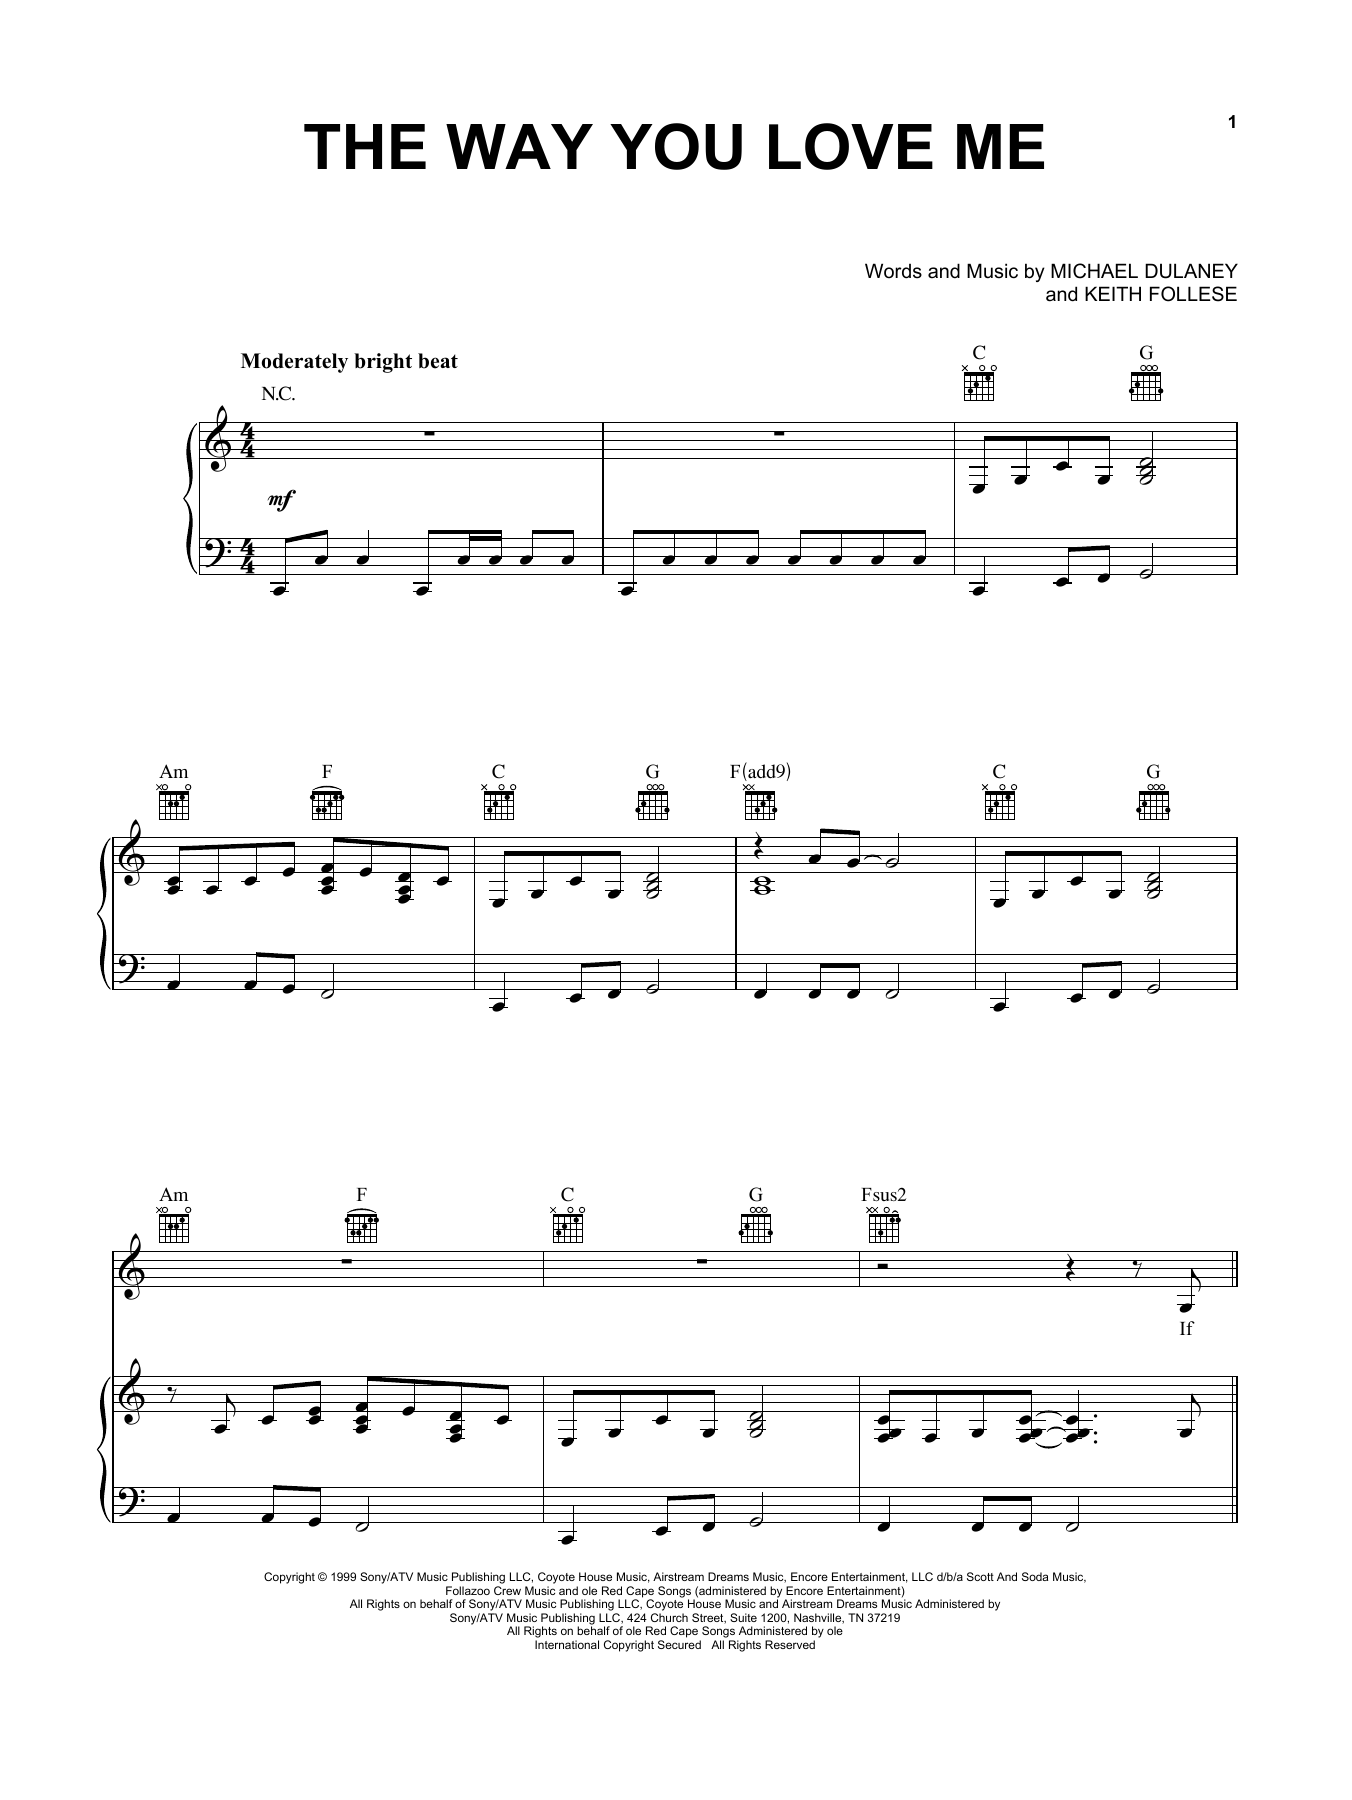 The Way You Love Me Sheet Music